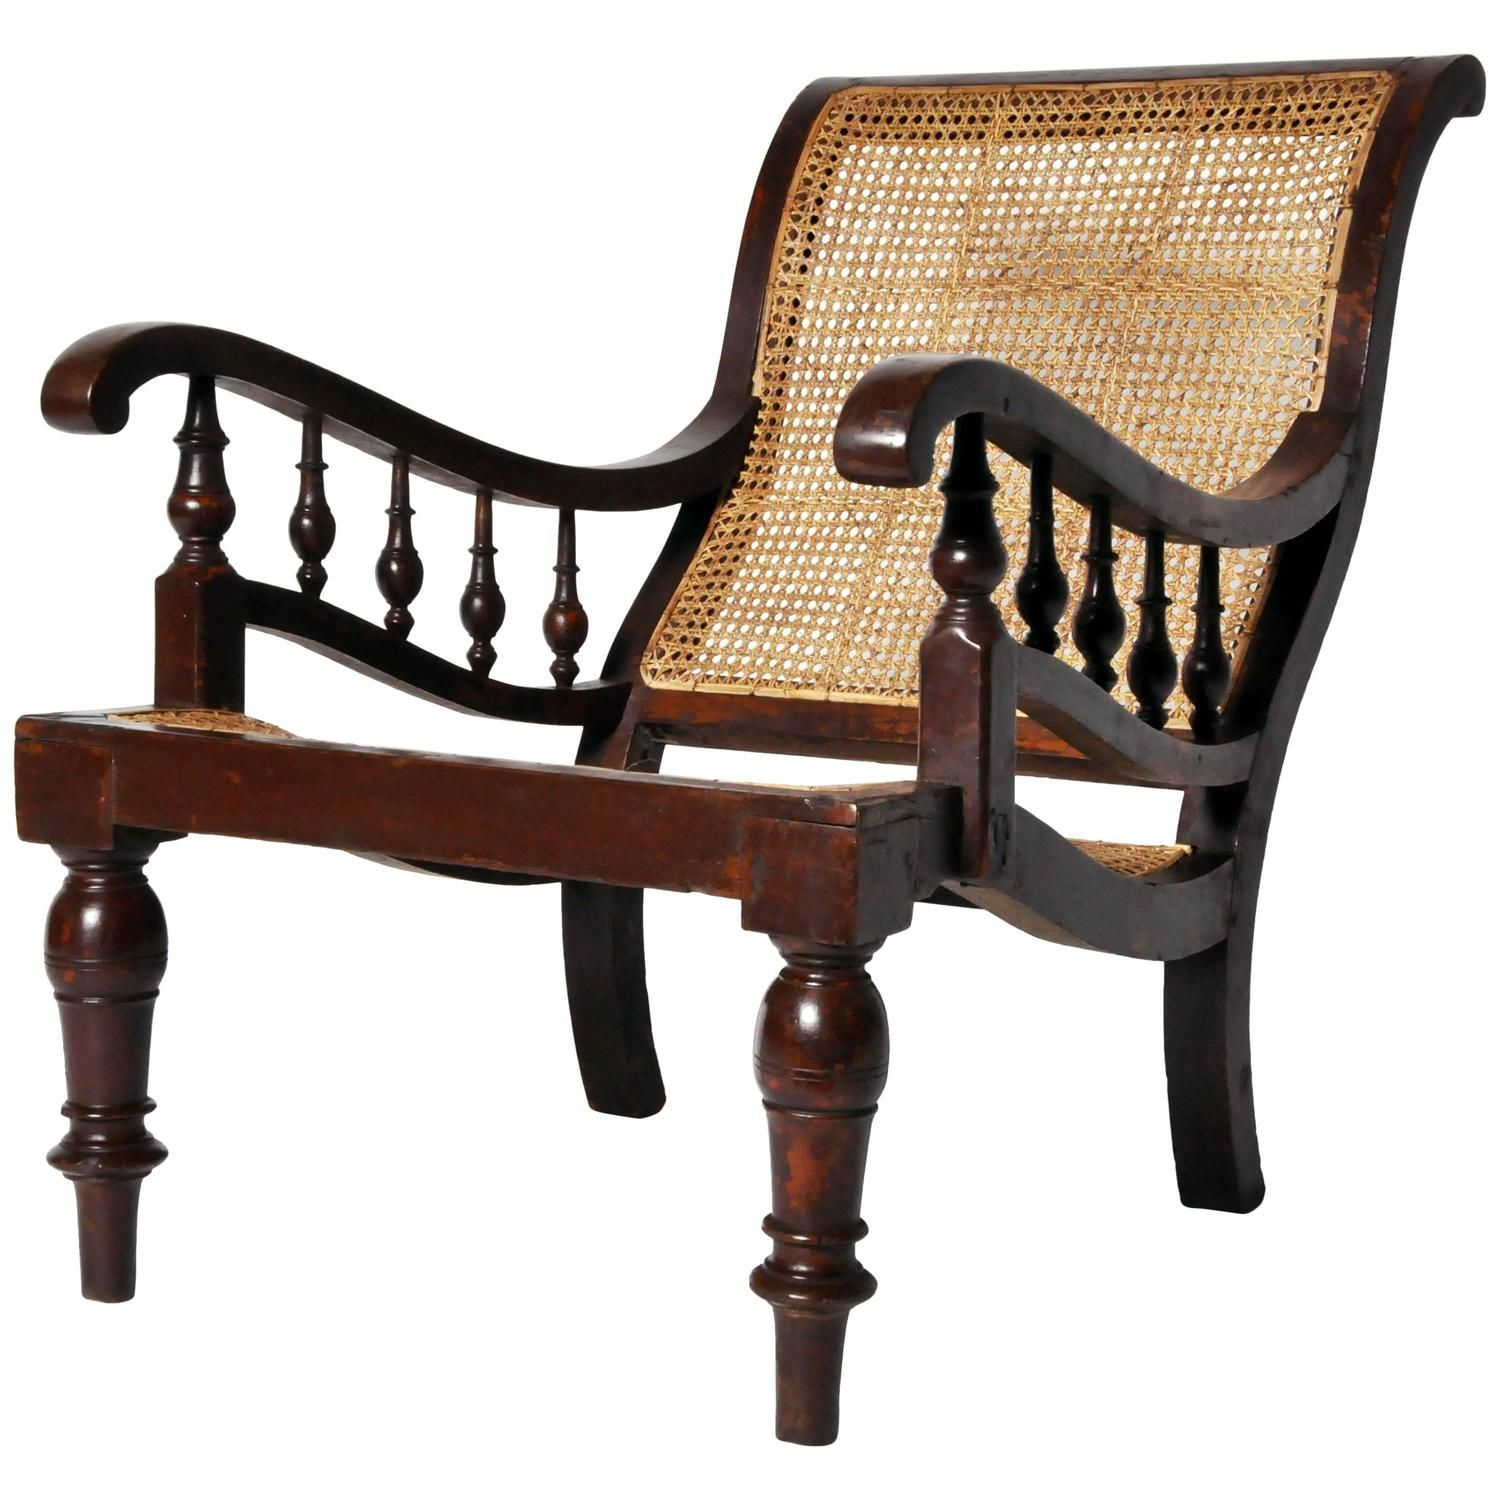 British Colonial Planters Chair